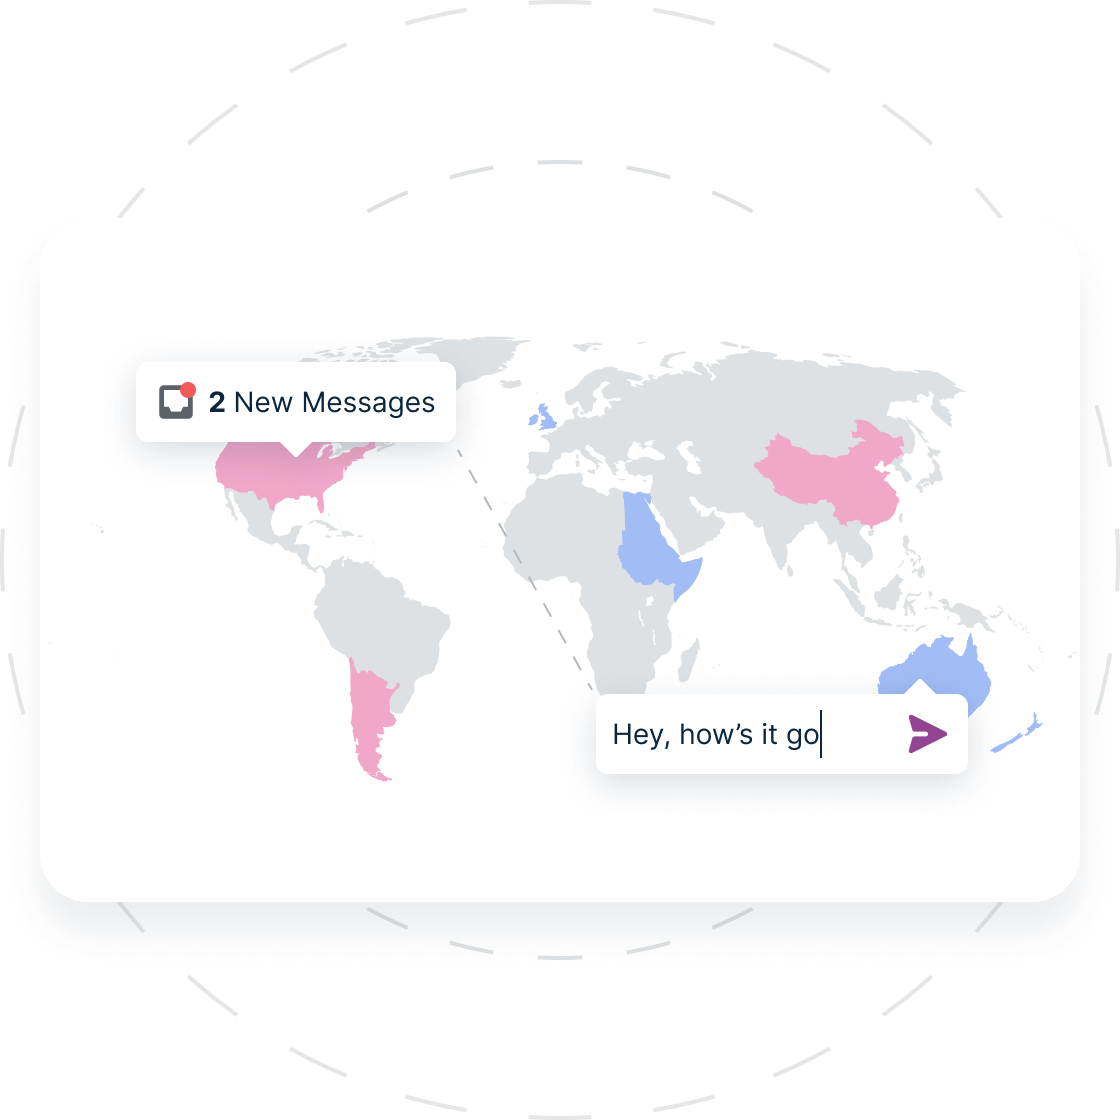 A world map with a few popular locations highlighted to show the diverse range of patients across the globe. There is also a message notification in the US, and a message field with someone typing in Australia. This shows how interconnected the platform is.